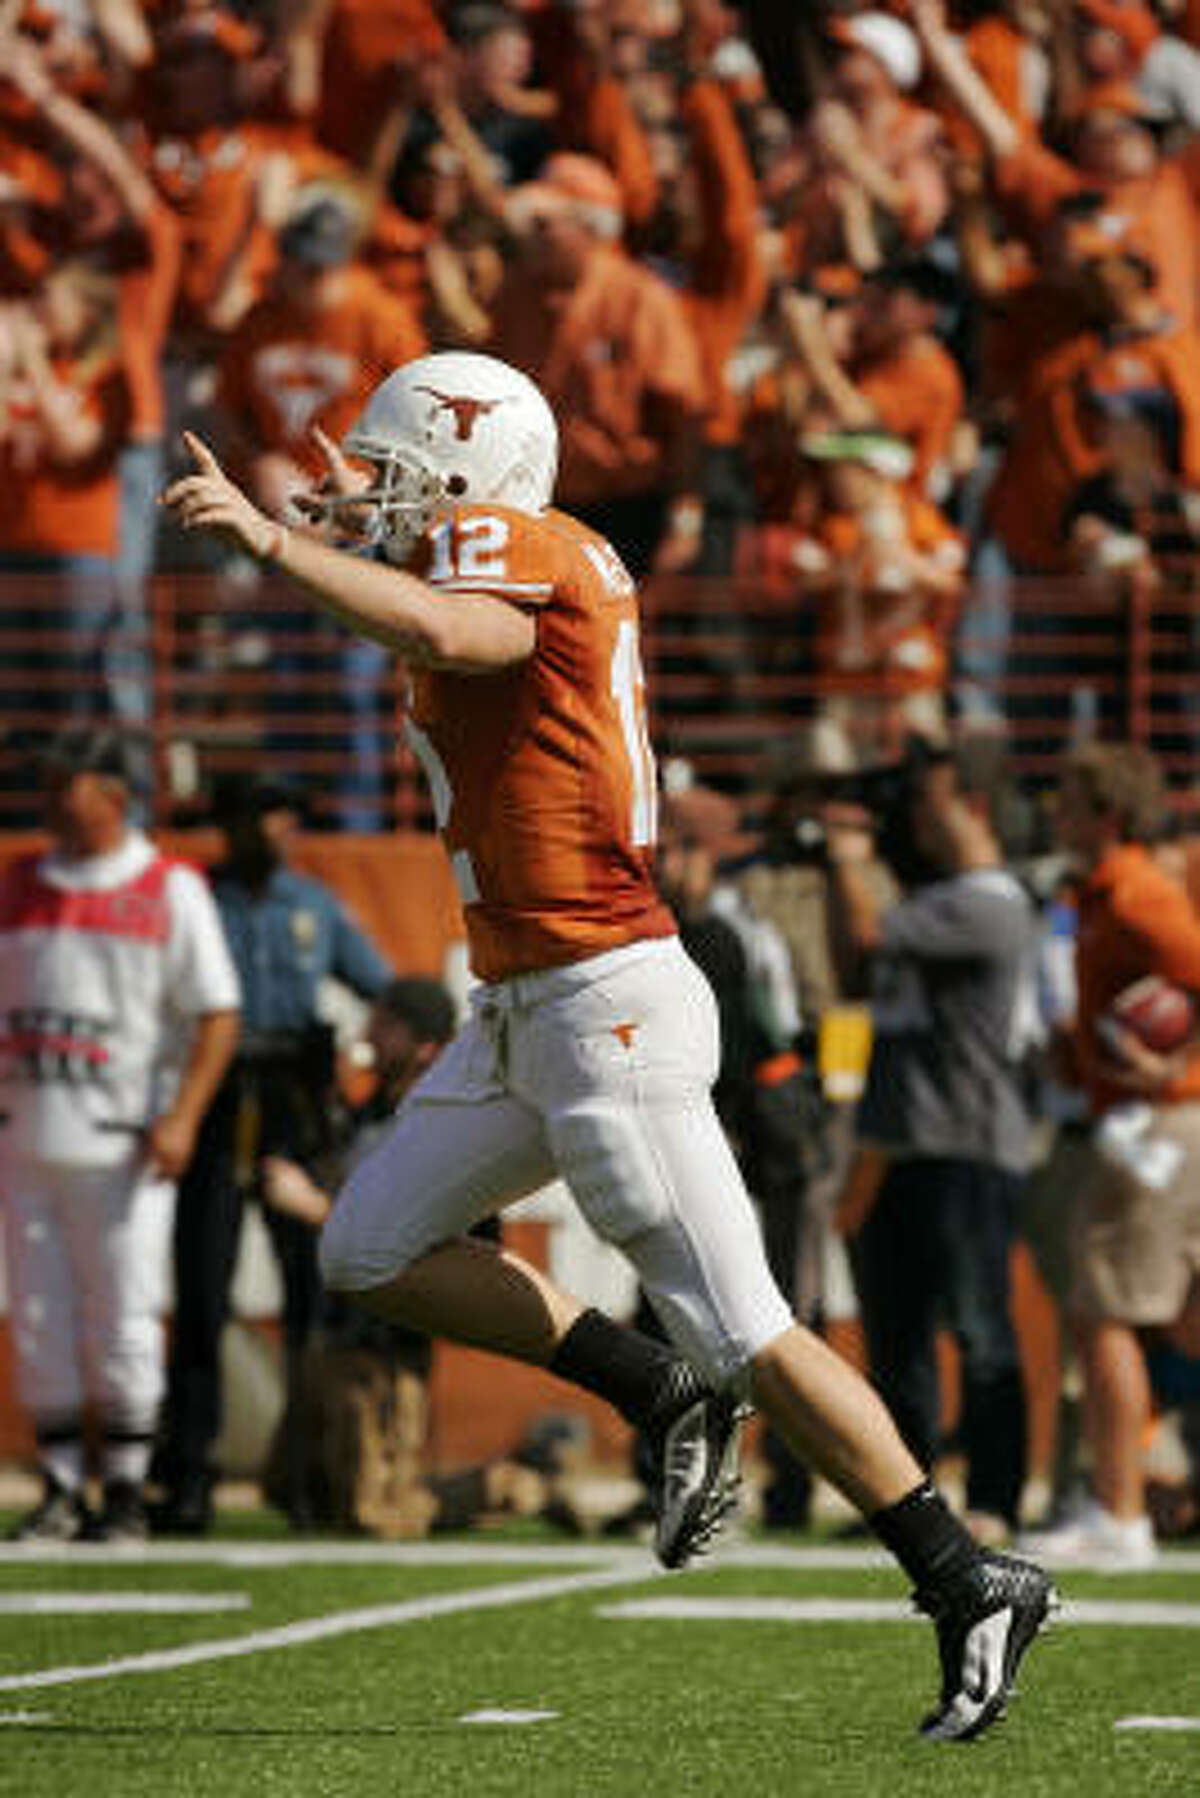 UT quarterback Colt McCoy celebrates after throwing a touchdown pass to wide receiver Jordan Shipley.